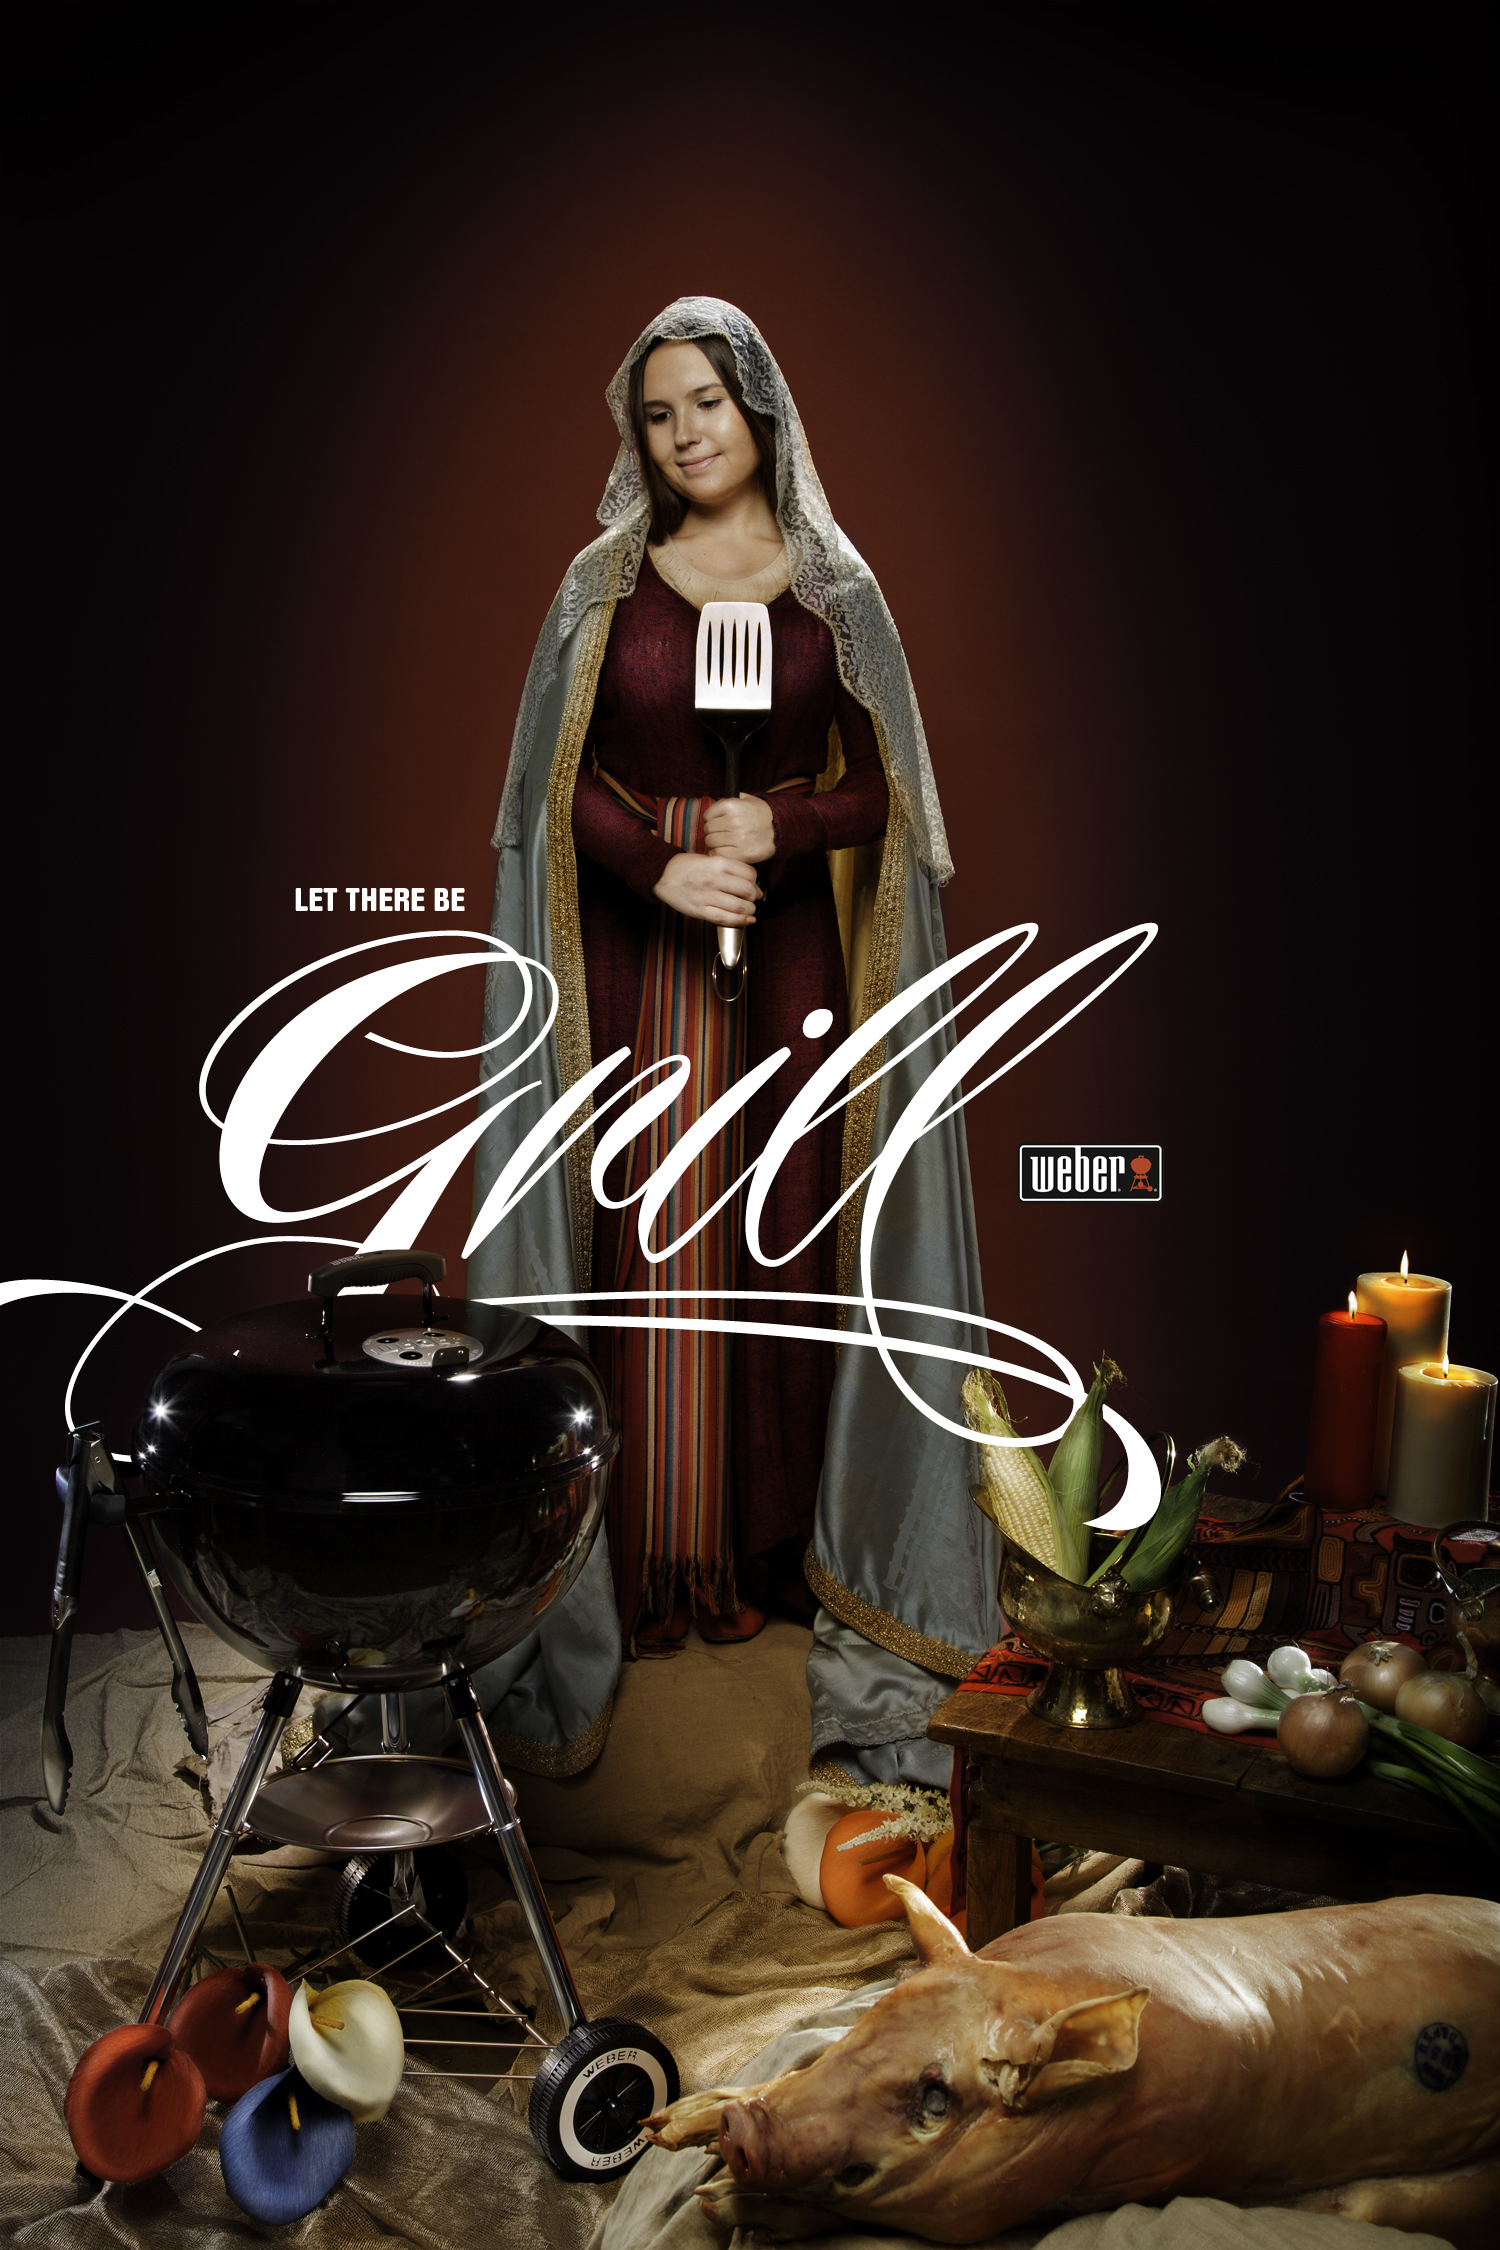 Our Lady of the Grill  Art Director / Copywriter : Chris Gilbert  Photography: J esse Narducci (portfolio: here)